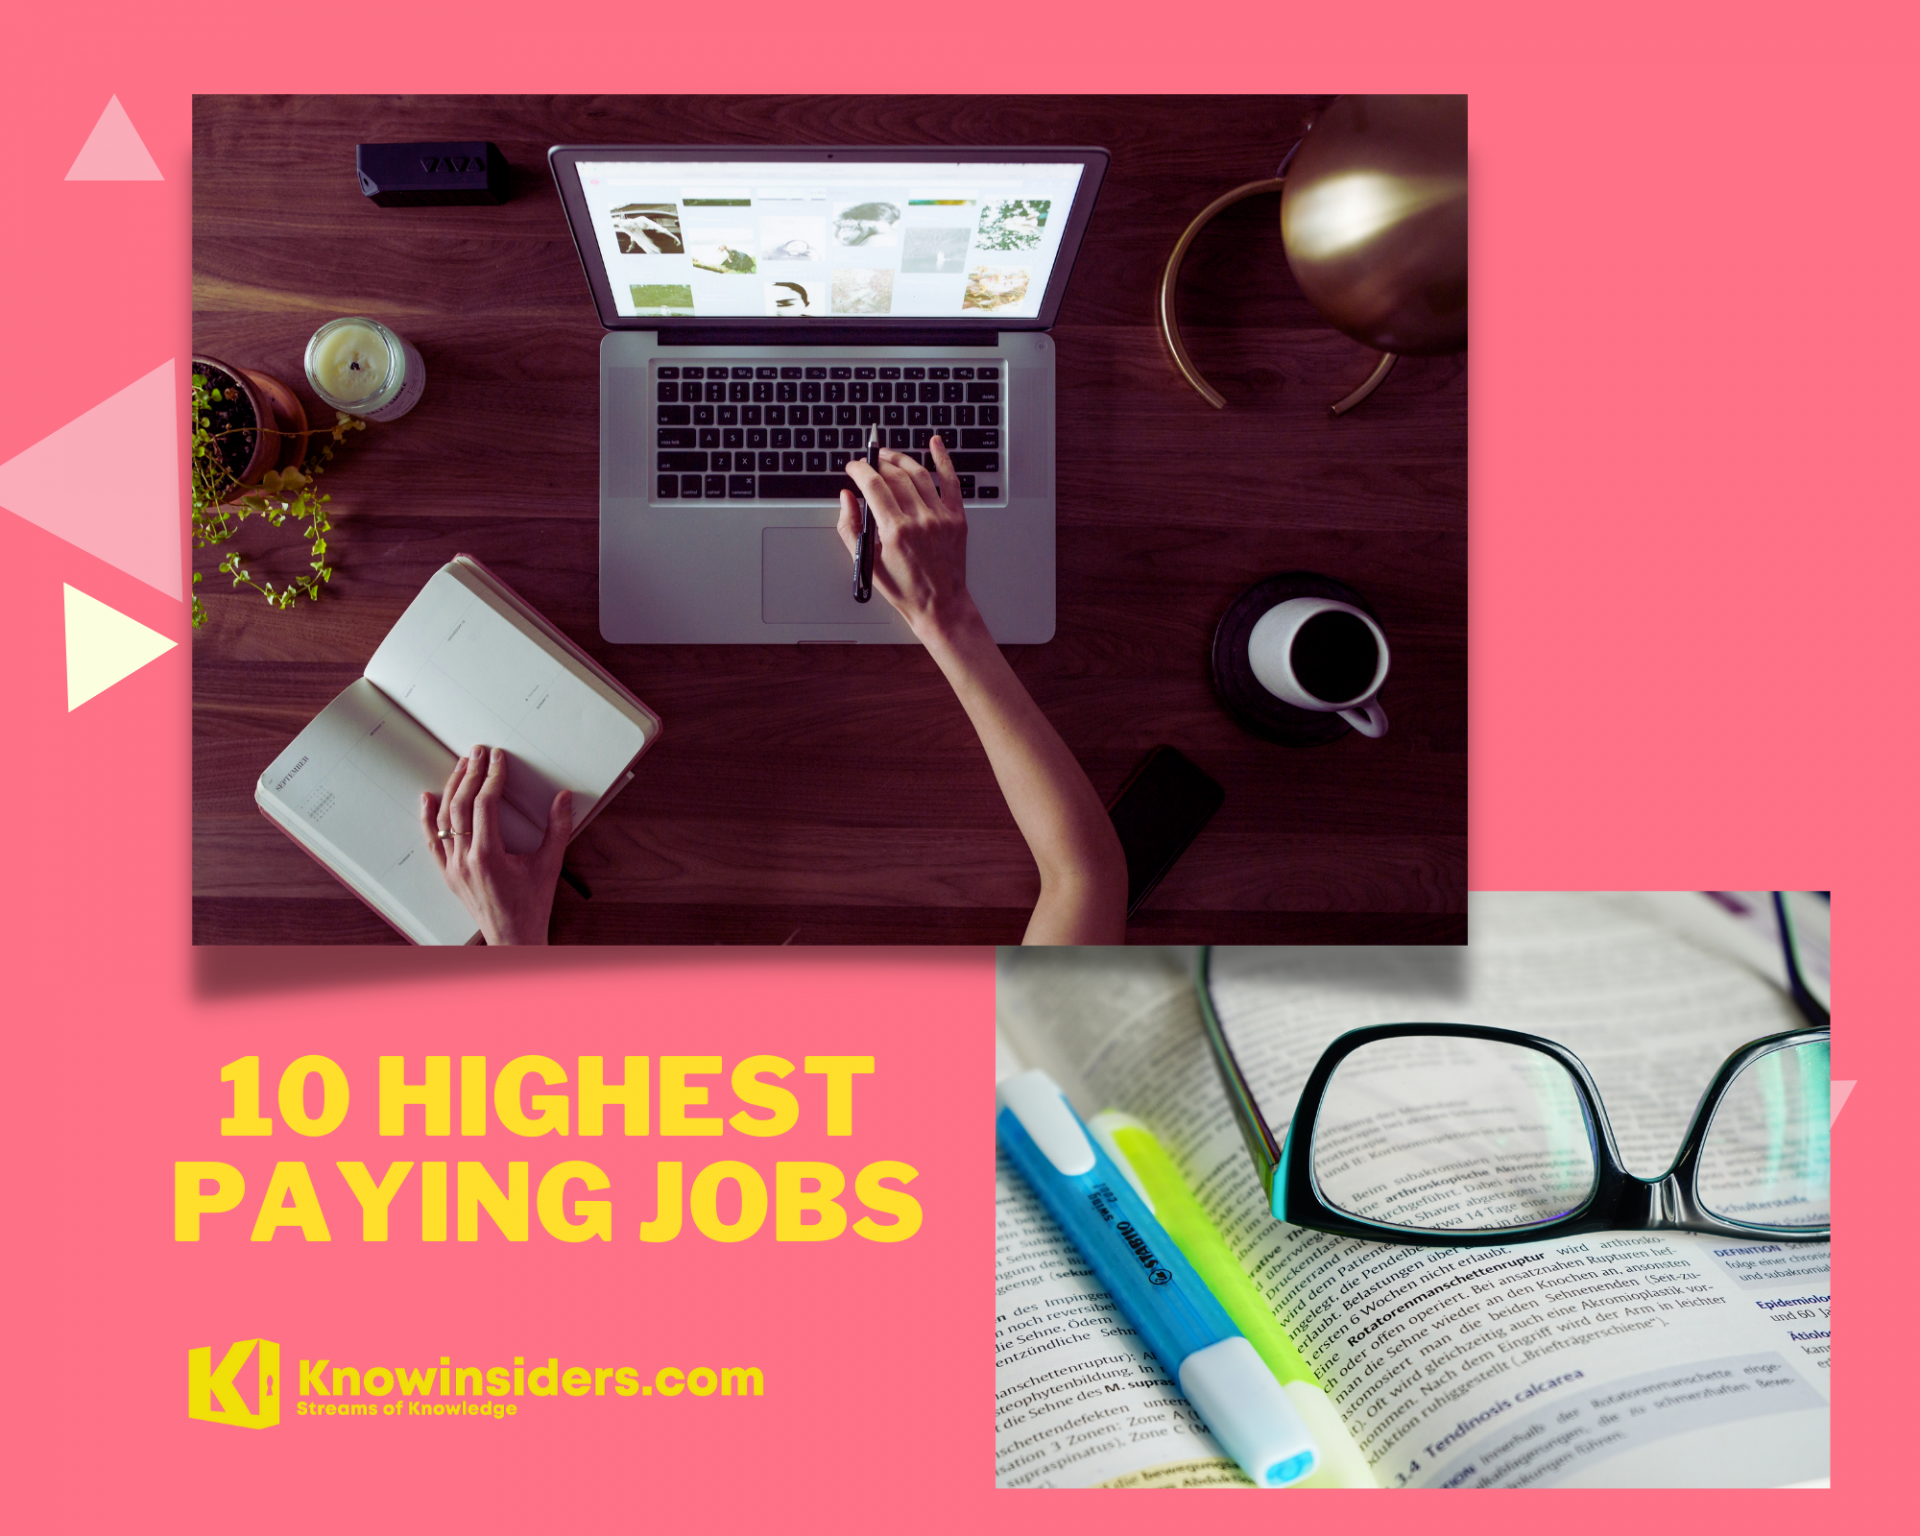 The Top-Paying Jobs That DON'T Require a University Degree in Australia